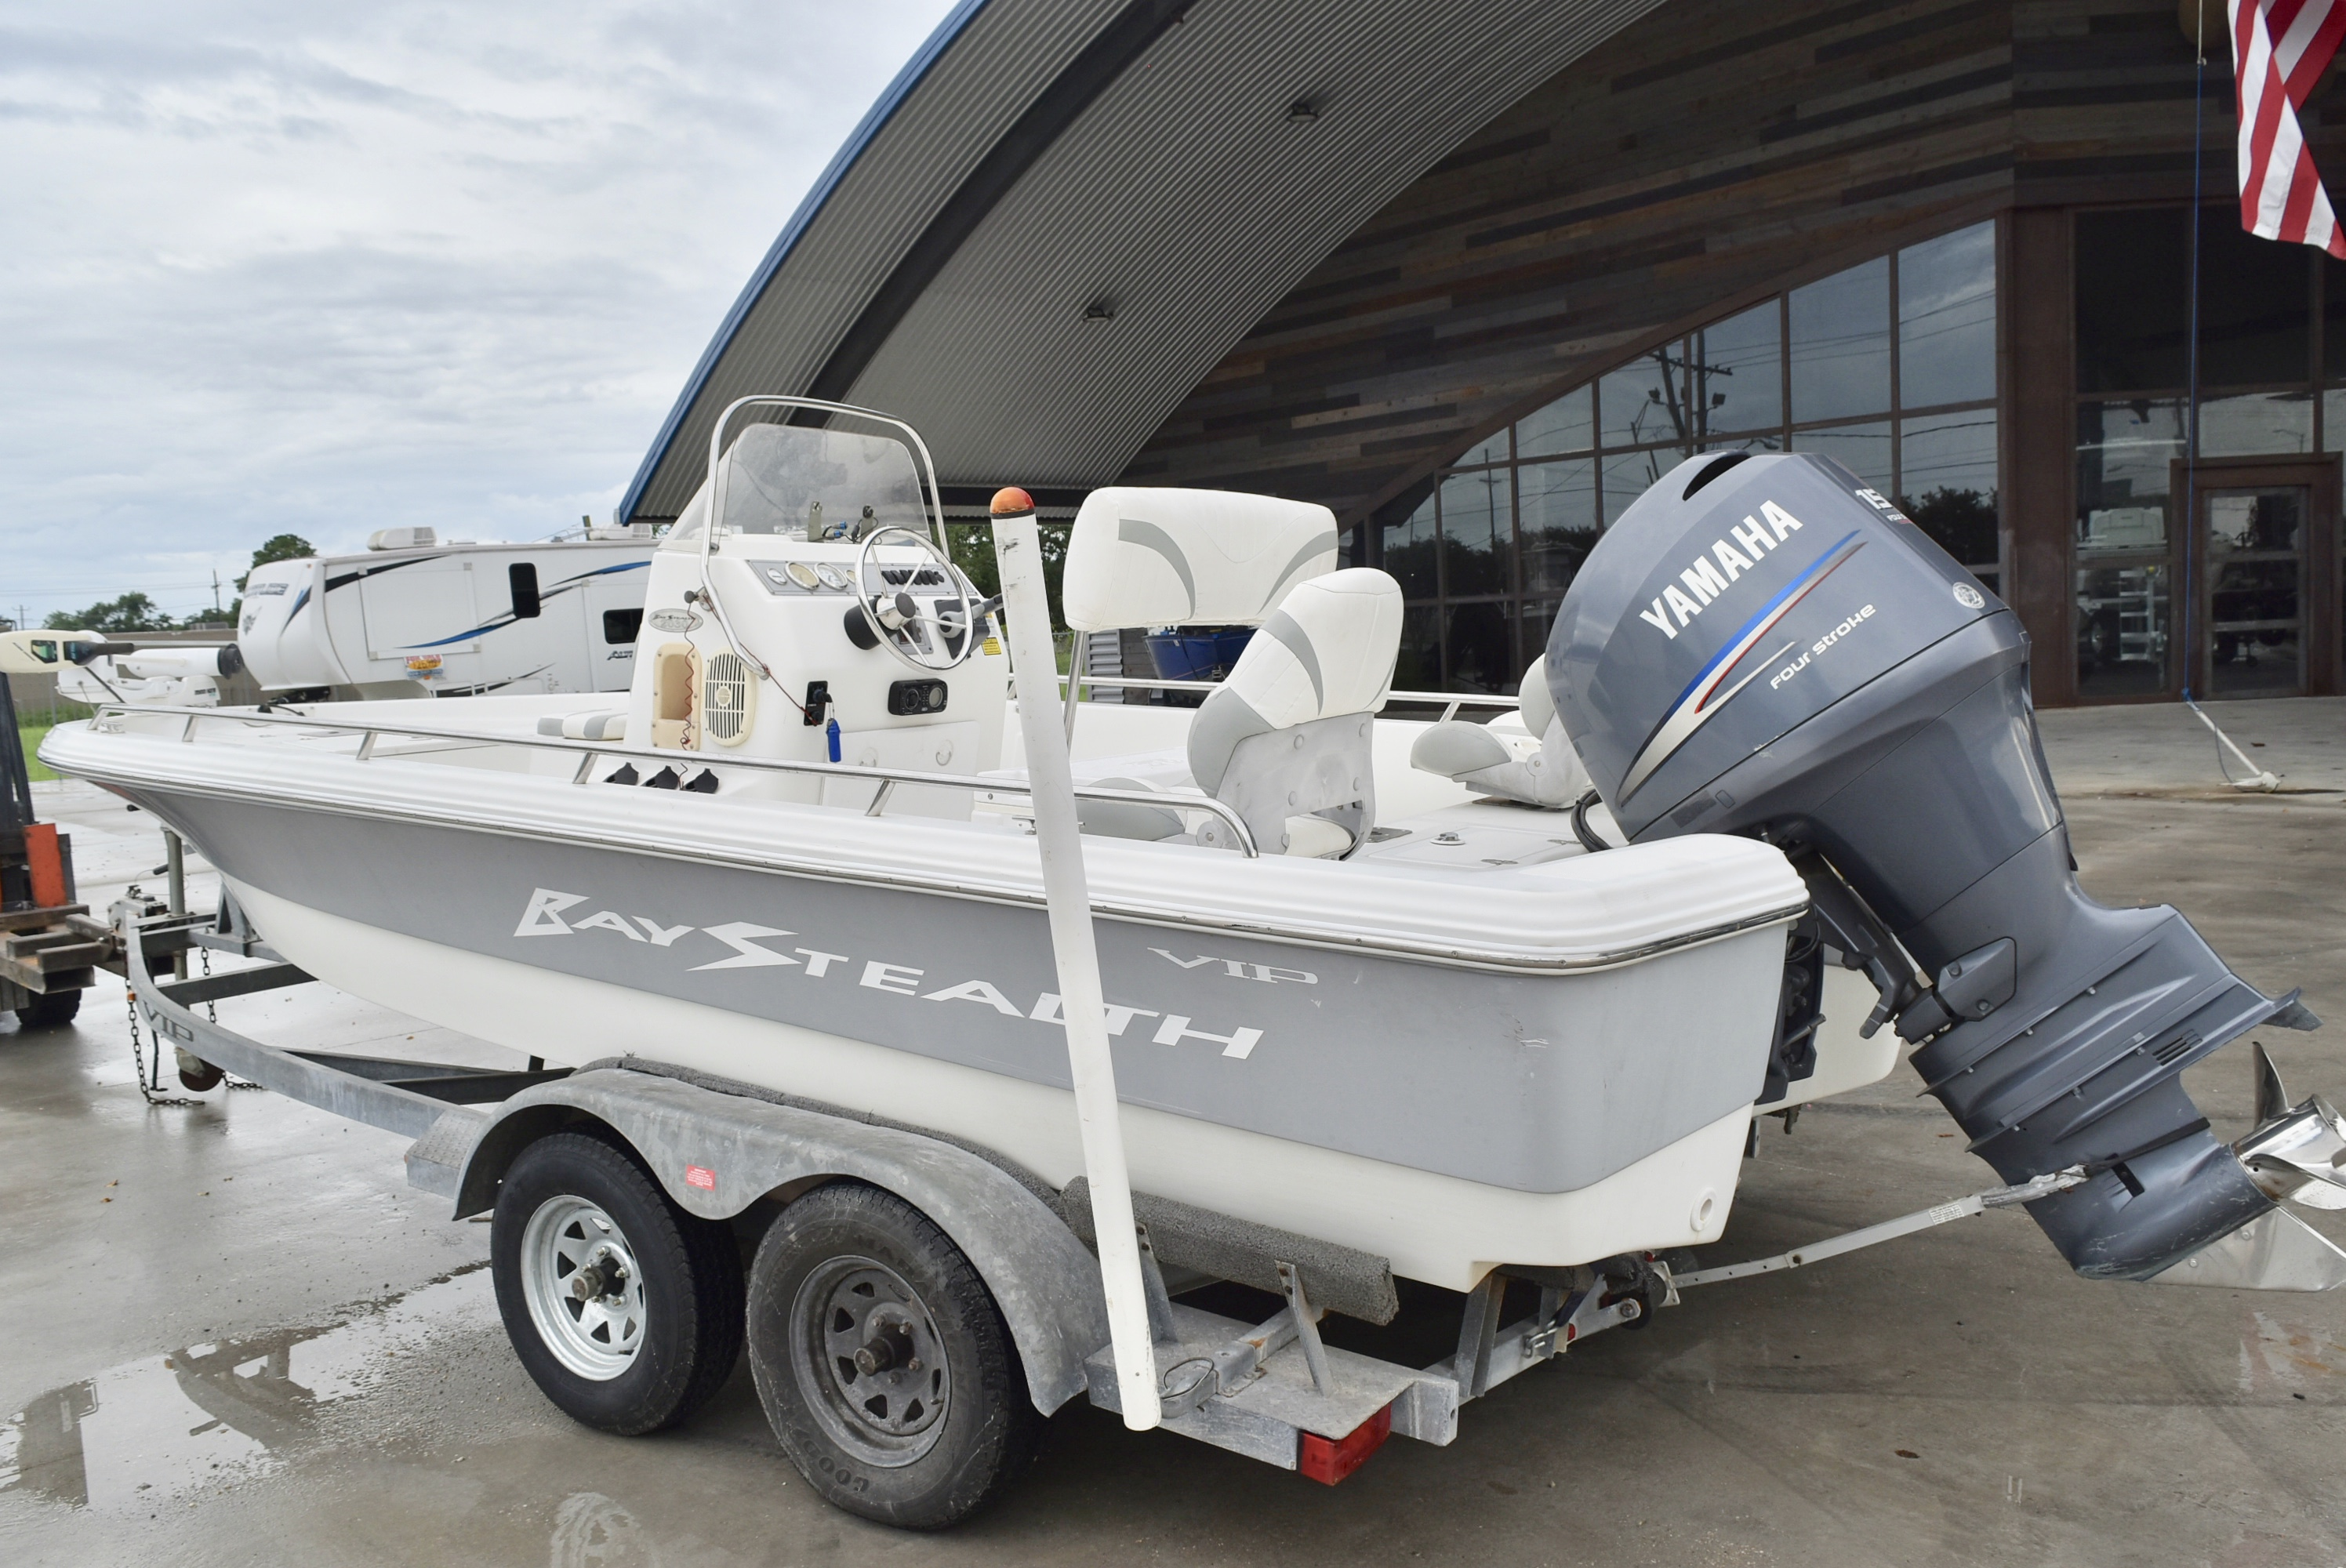 2007 Bay Stealth boat for sale, model of the boat is 2030 & Image # 4 of 8